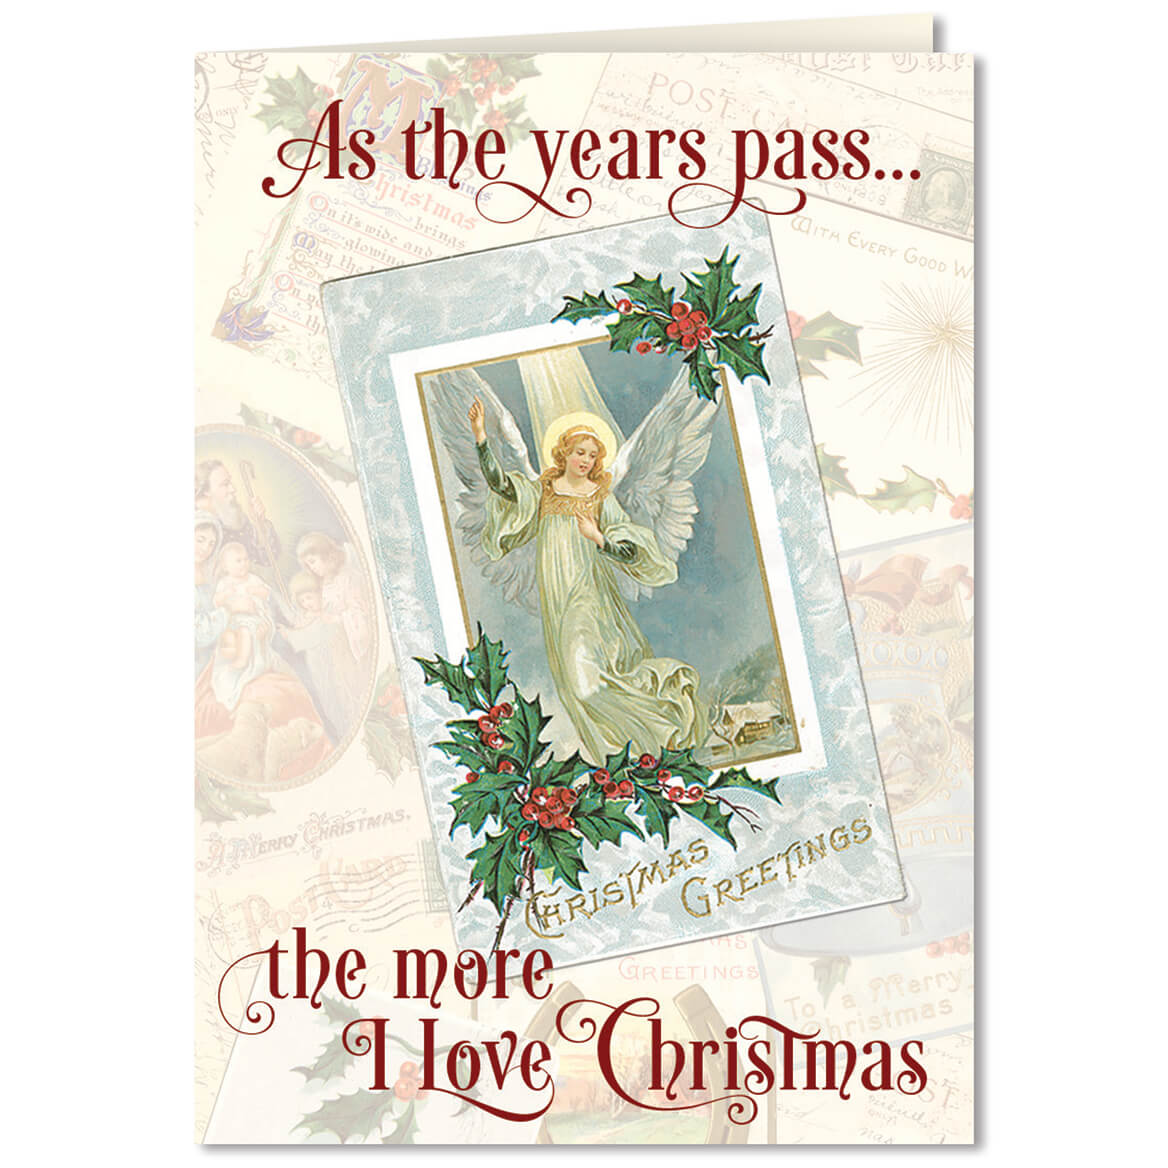 personalized the more i love christmas cards set of 20 360211 - Love Christmas Cards